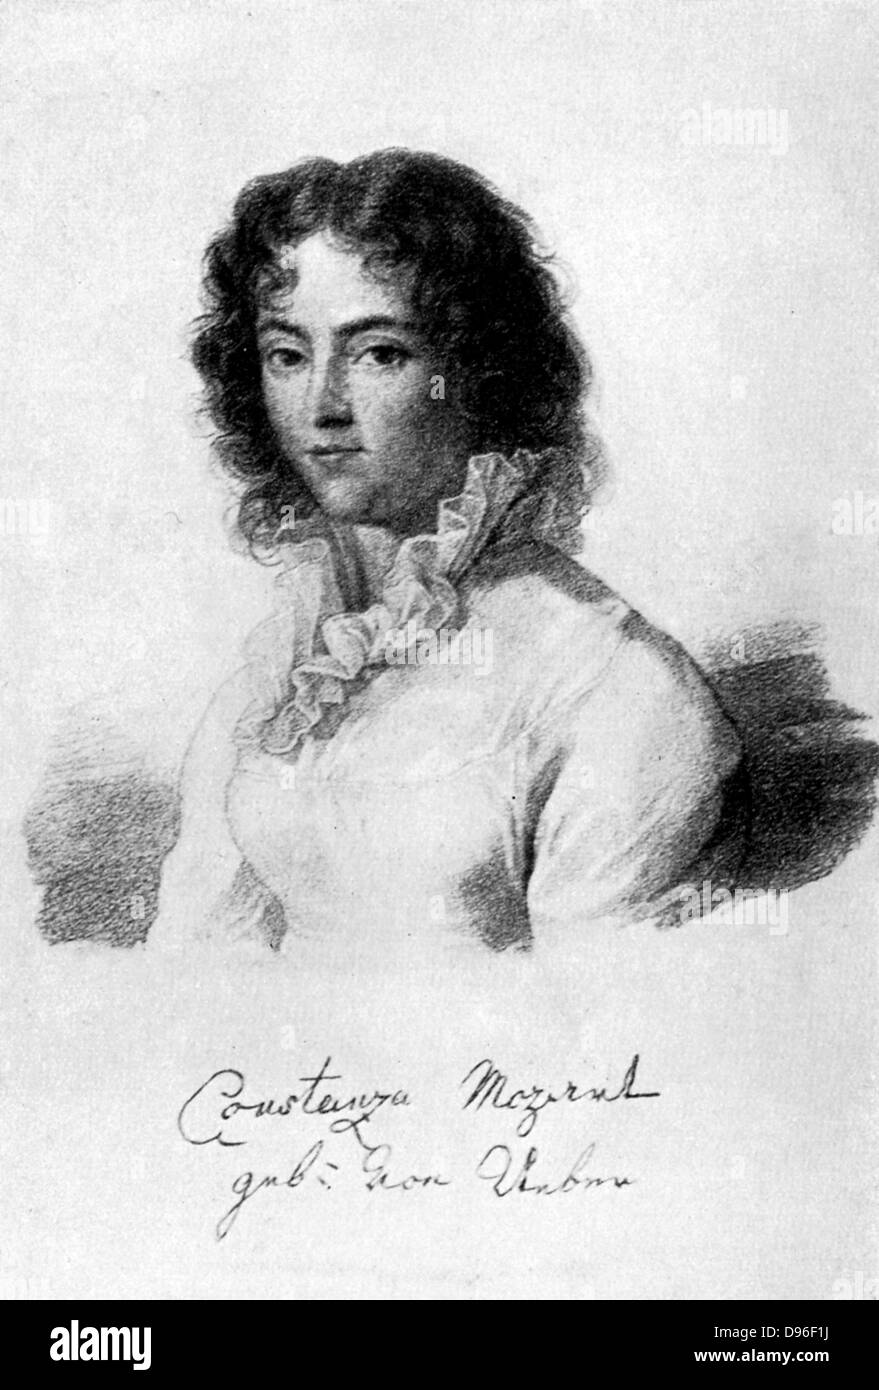 Constanza Mozart, 1783.  Born Constanza Weber, she  married Wolfgang Amadeaus Mozart in 1783. - Stock Image